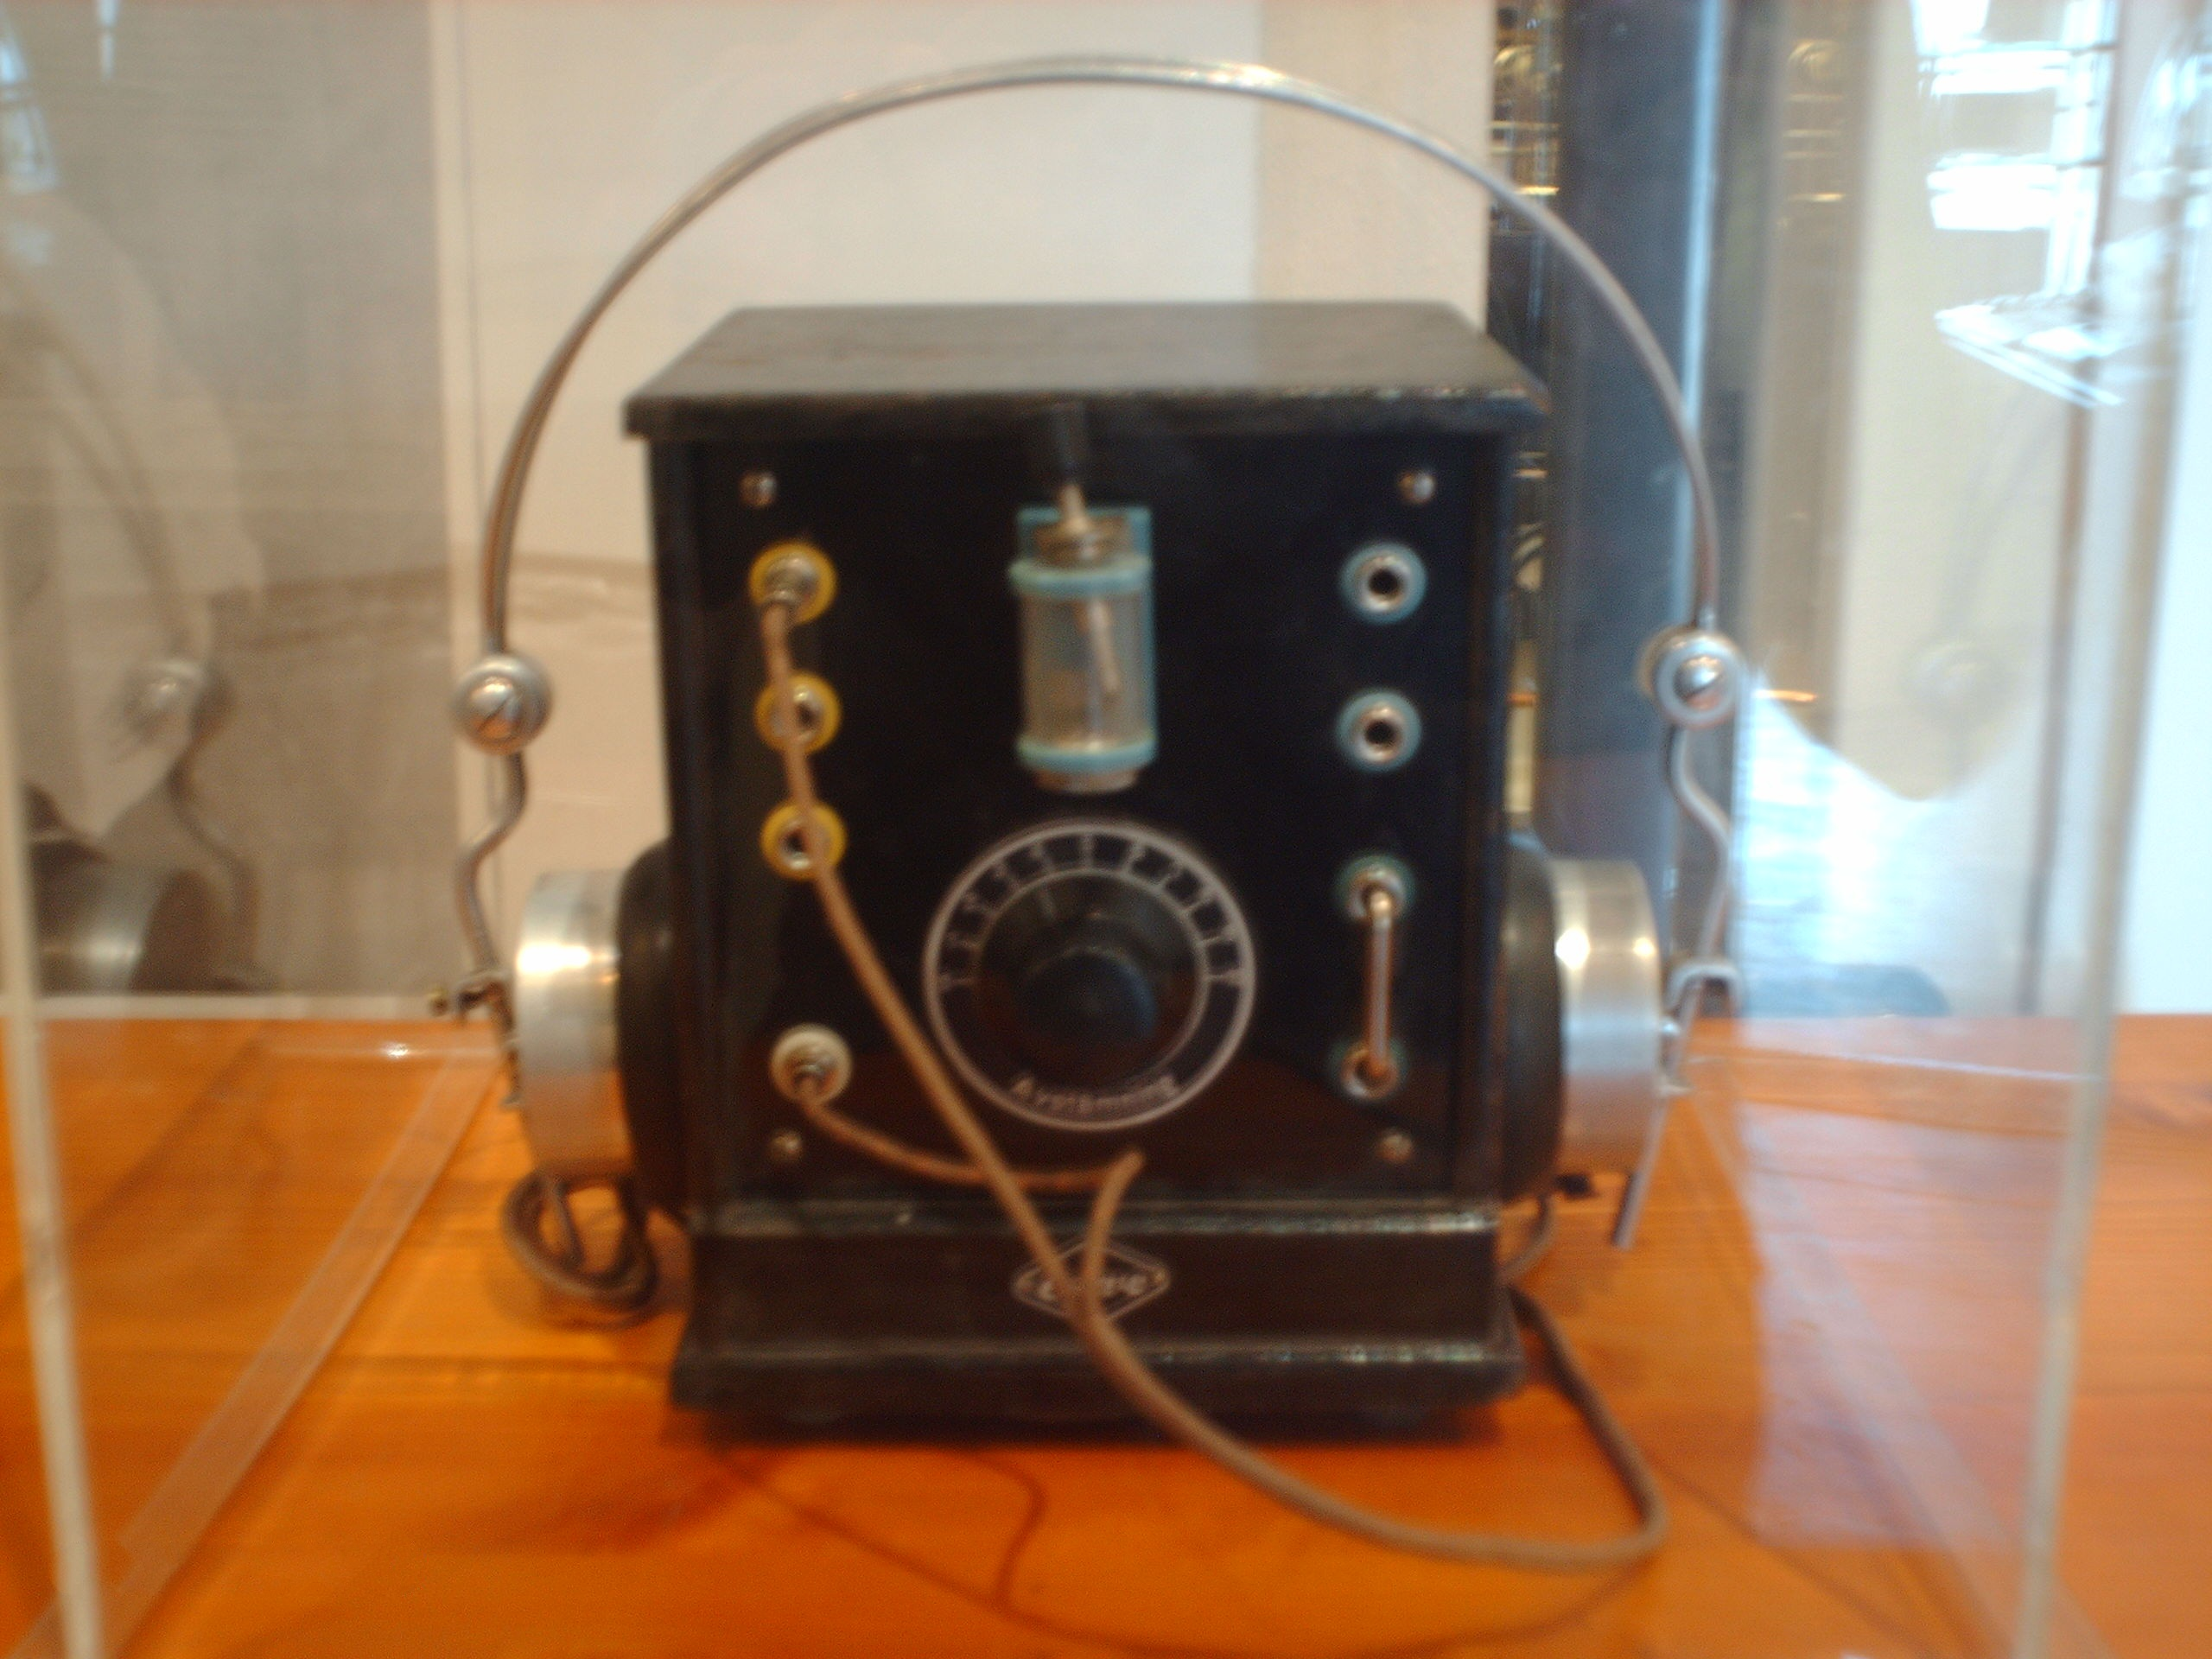 Crystal Radio Diode For Low Impedance Headphones Source Https Uploadwikimediaorg Wikipedia Commons 5 5a Kristallmottagare